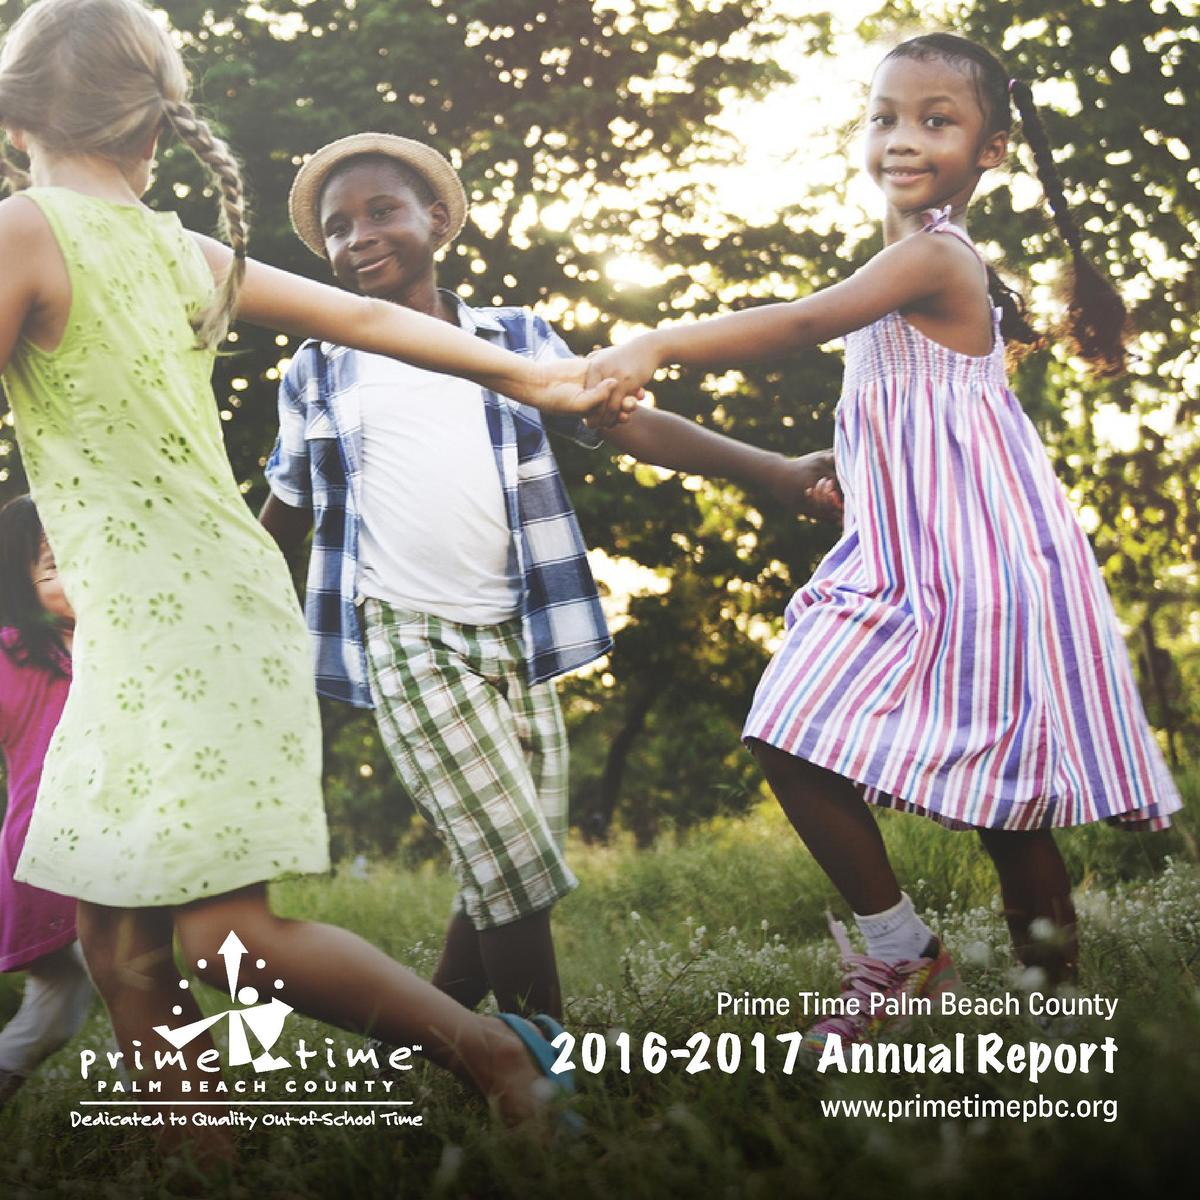 Prime Time Palm Beach County  2016-2017 Annual Report  www.primetimepbc.org